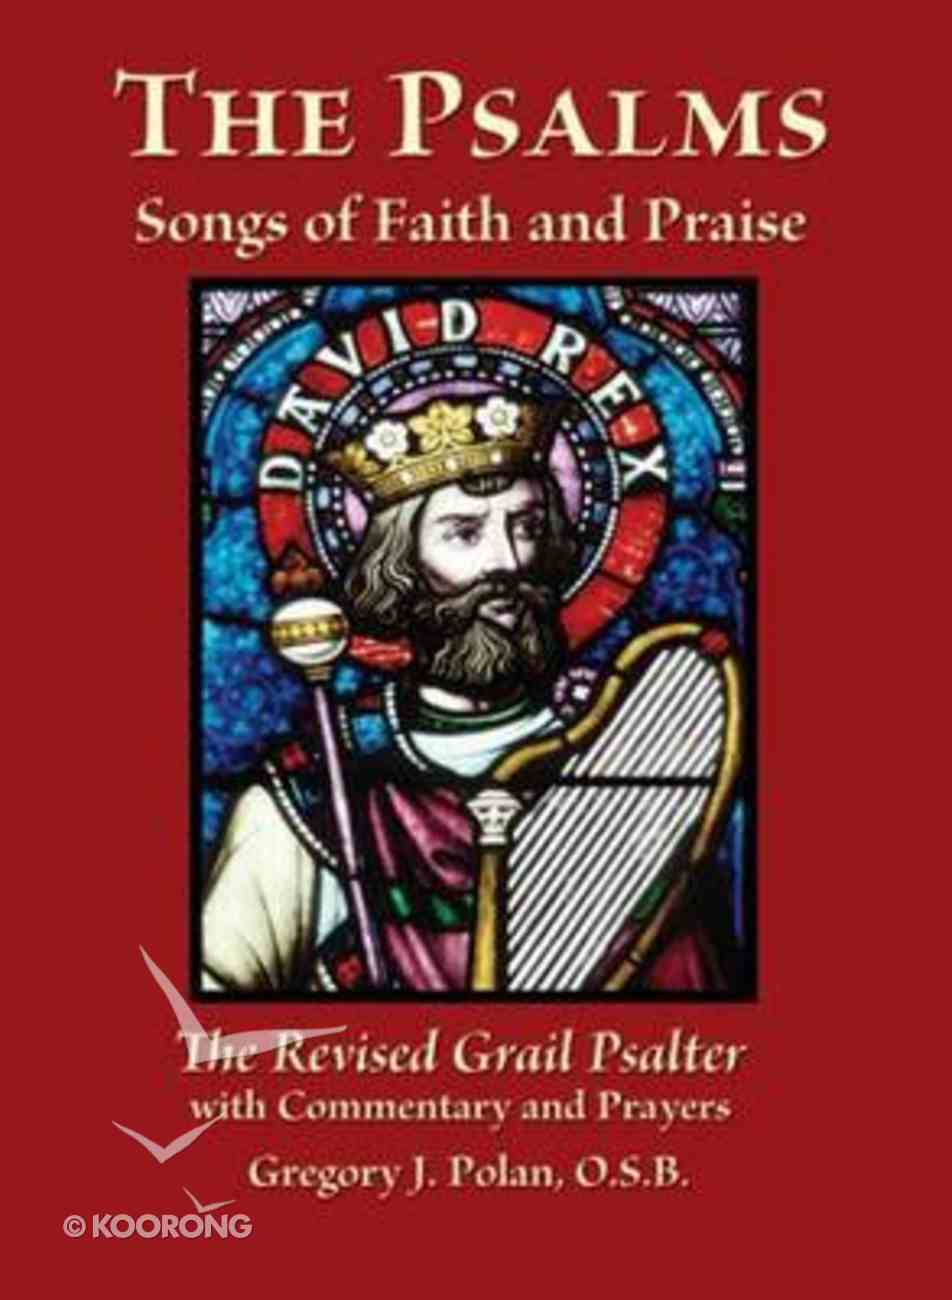 The Psalms Songs of Faith and Praise: The Revised Grail Psalter With Commentary and Prayers Paperback